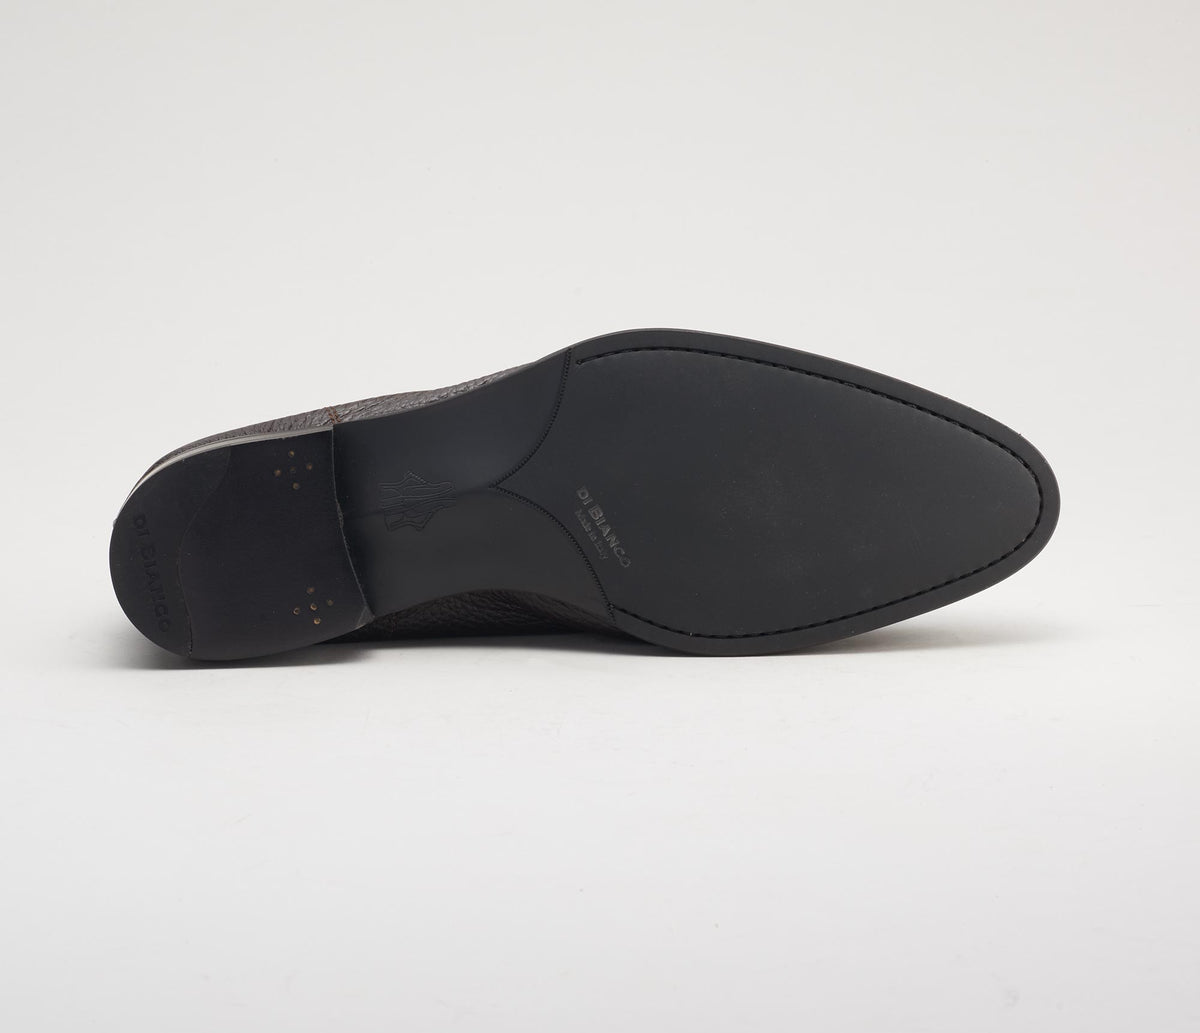 Brera Cervo Loafer in T Moro